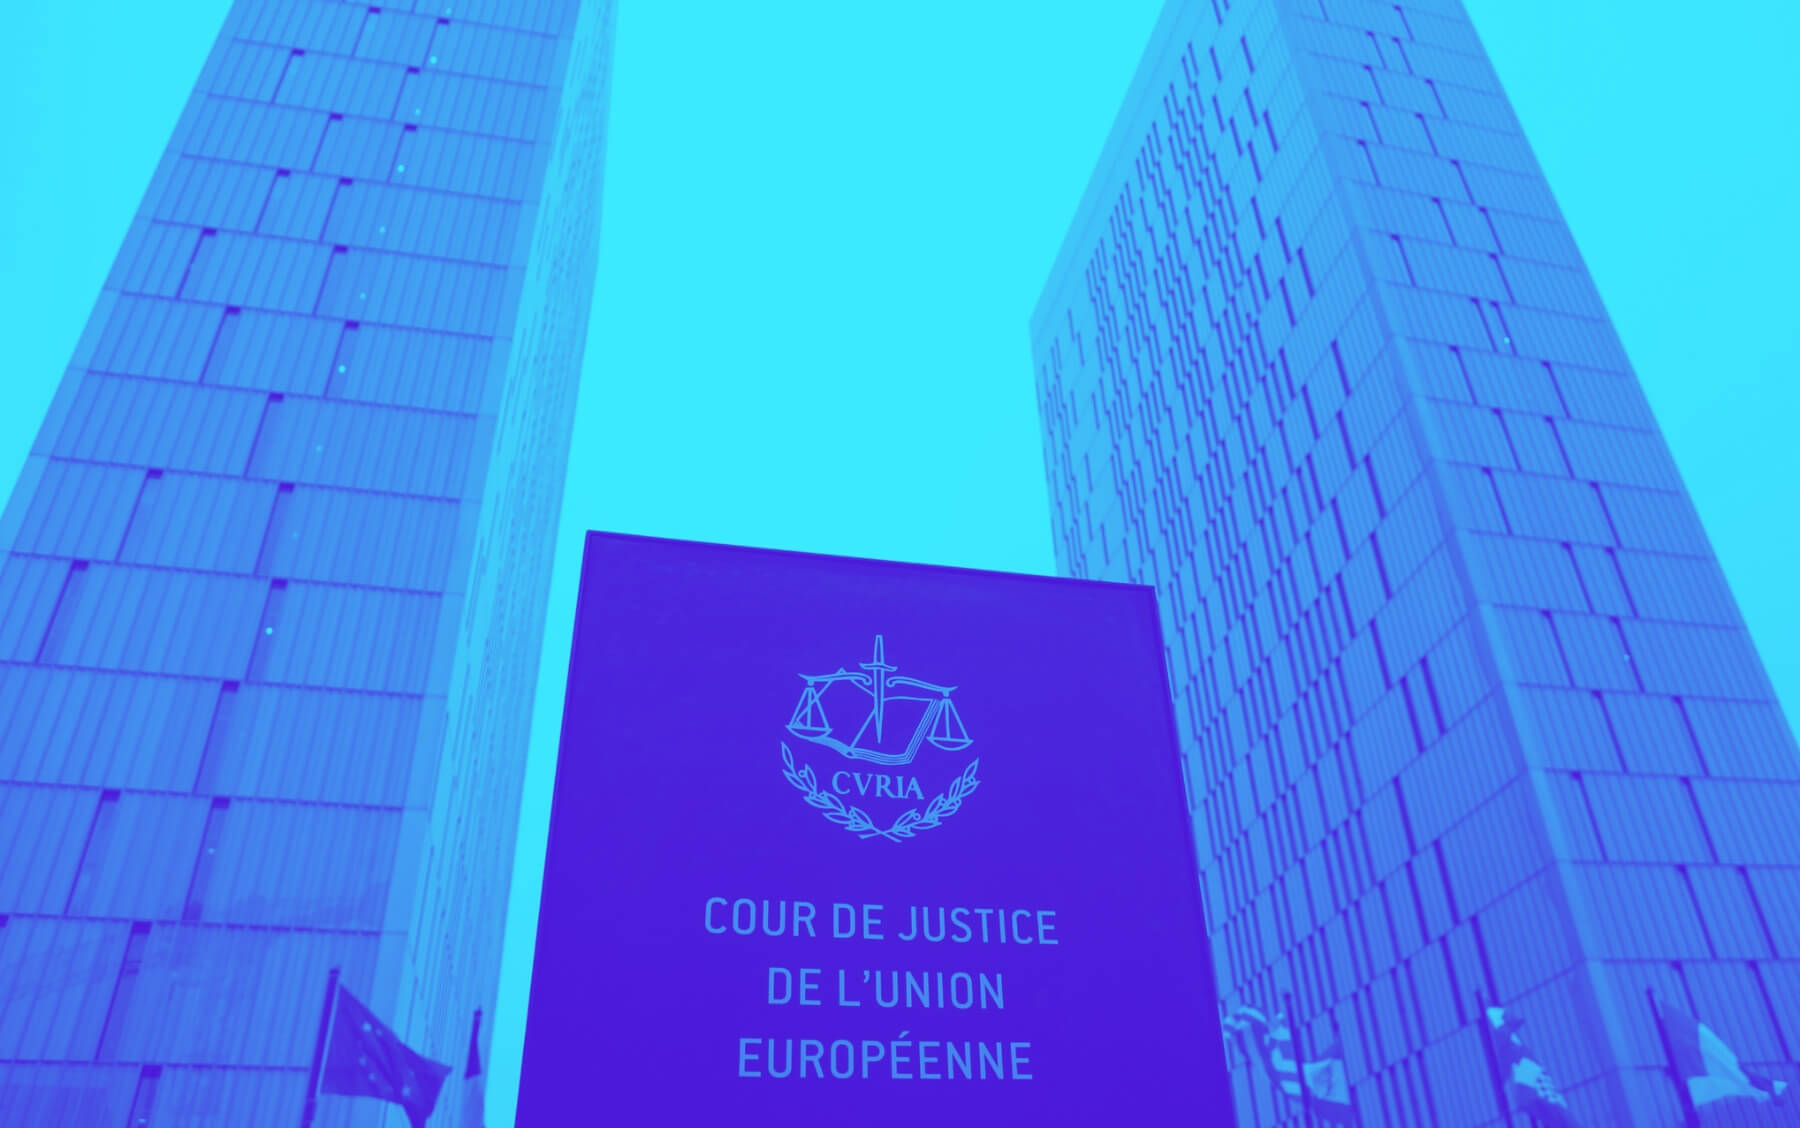 EU's top court says member countries can order Facebook to take down illegal content globally